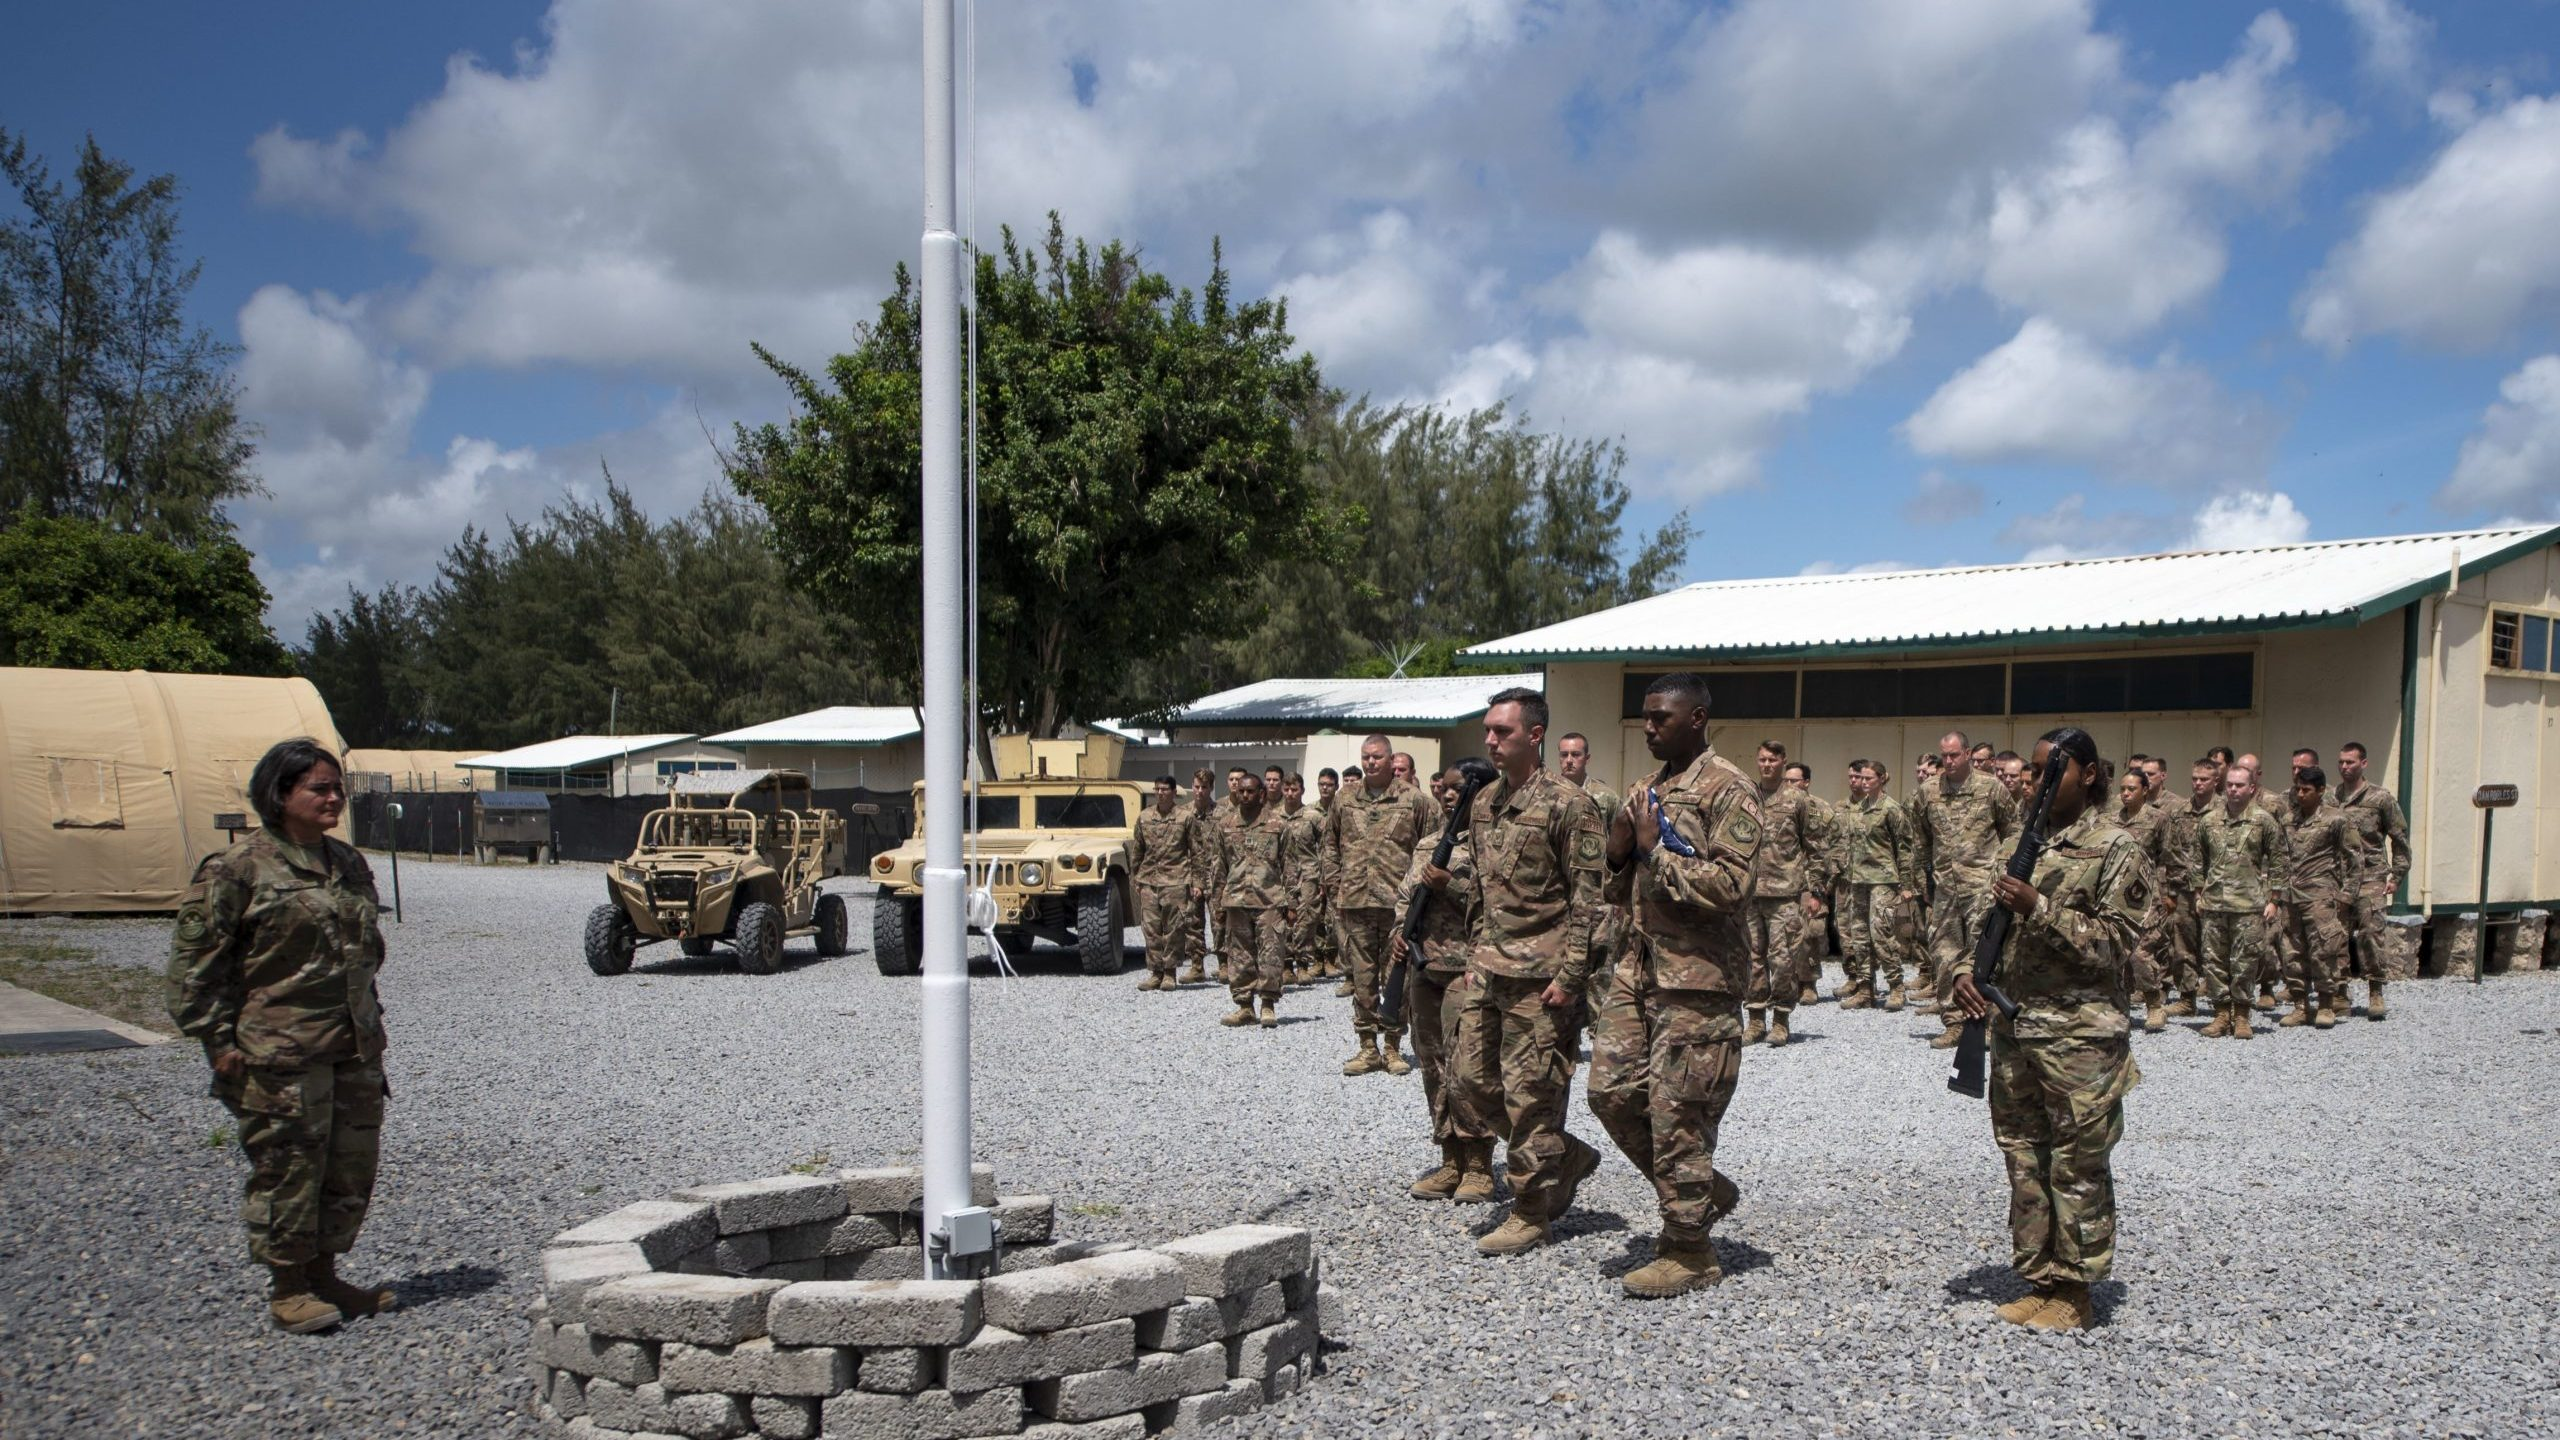 U.S. Air Force Airmen from the 475th Expeditionary Air Base Squadron conduct a flag-raising ceremony at Camp Simba, Kenya, on Aug. 26, 2019. (Credit: U.S. Air Force/ Staff Sgt. Lexie West via CNN)